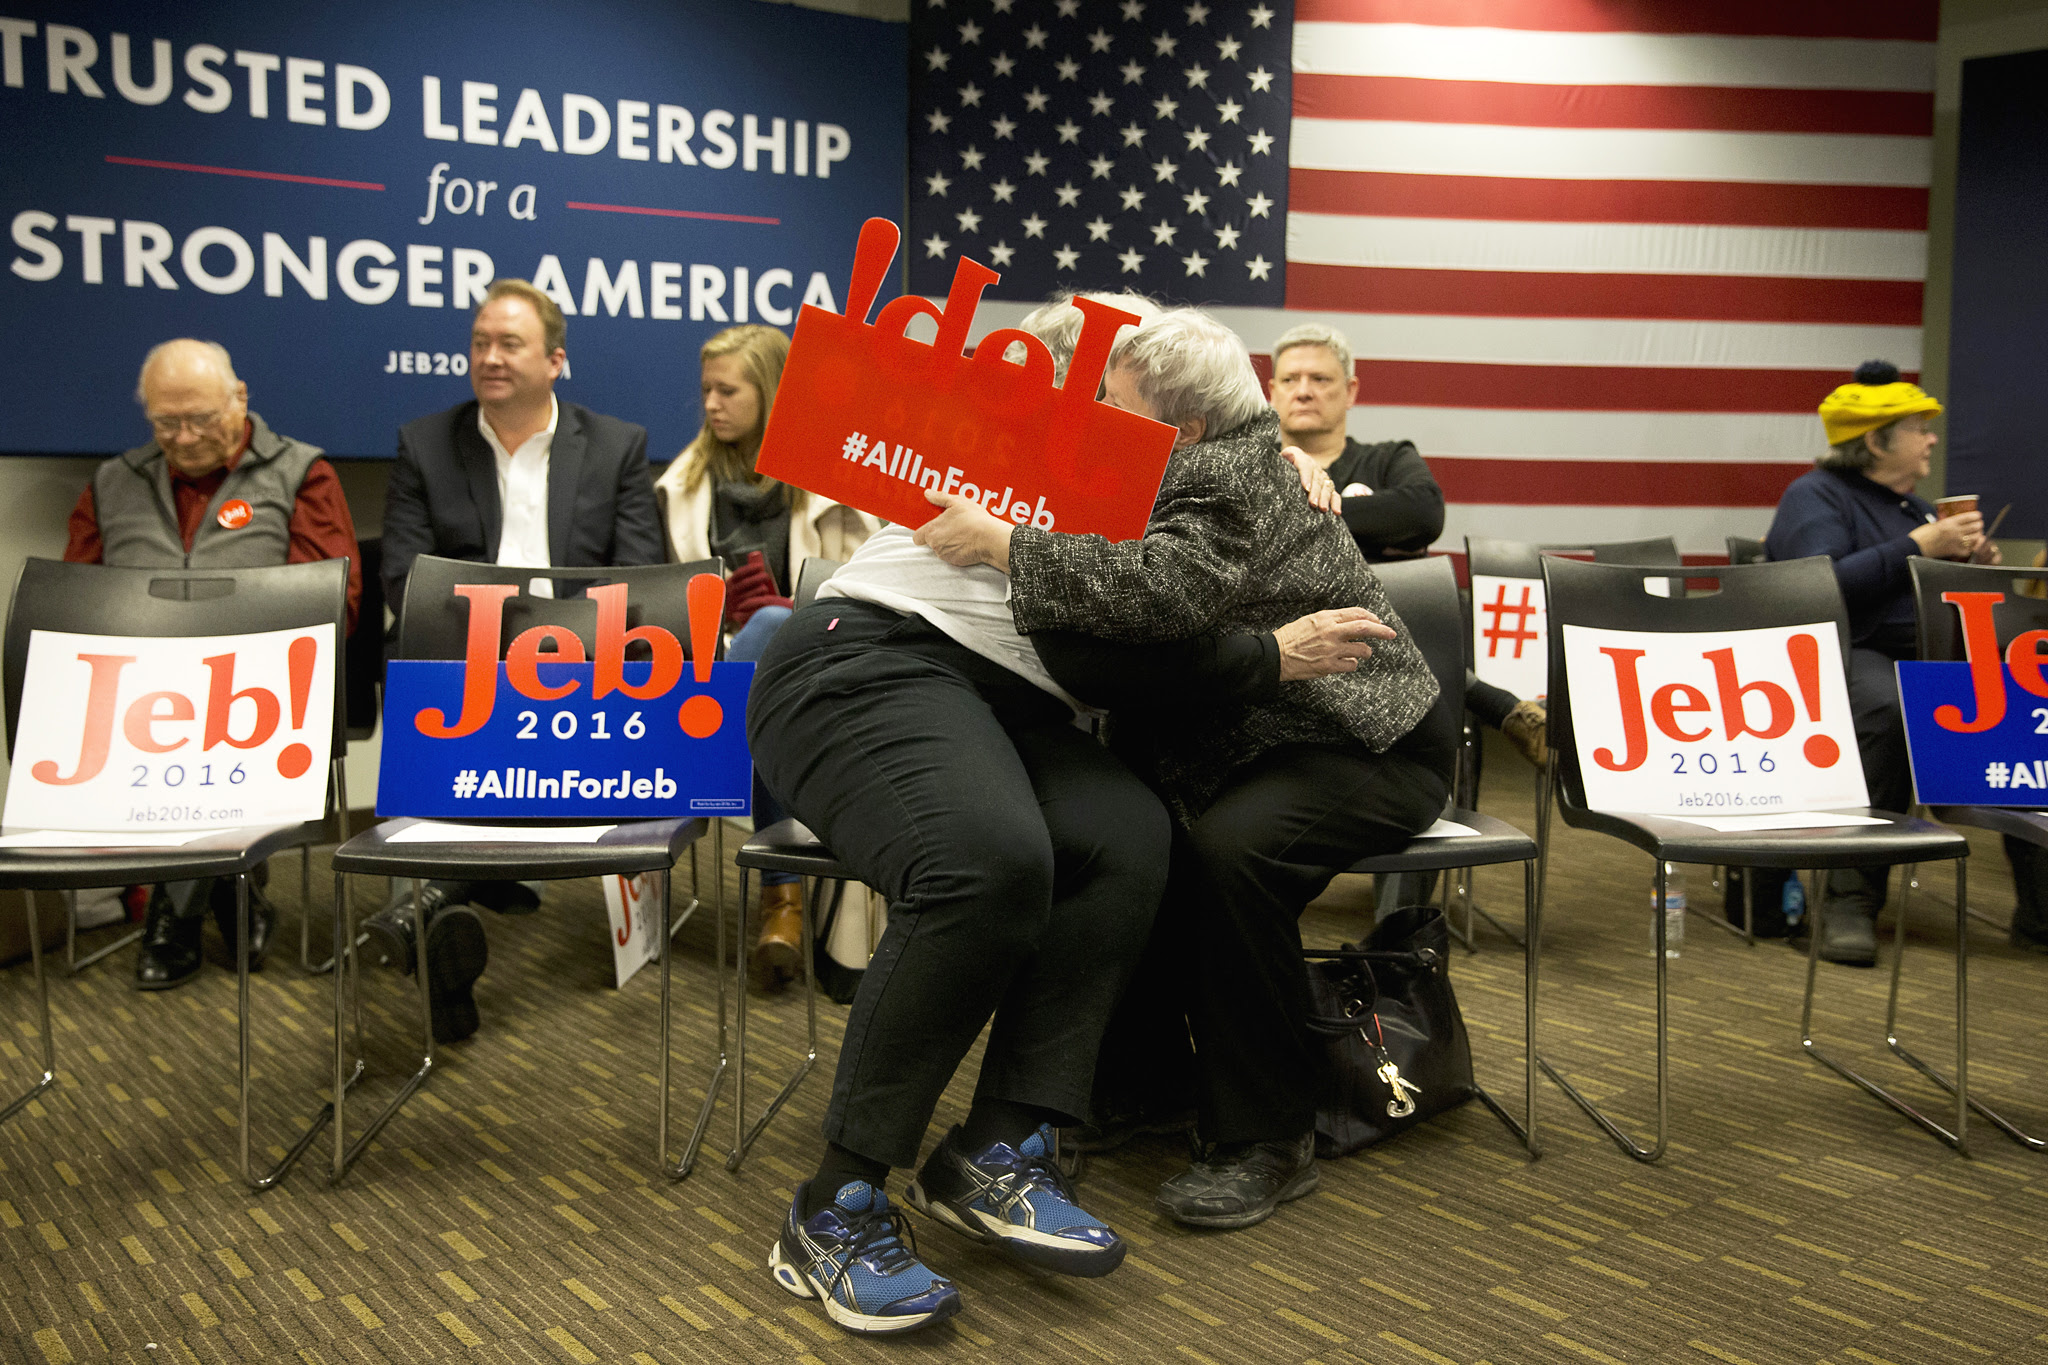 Jan Patterson, Joni Scotter...Jan Patterson, center left, hugs her friend Joni Scotter before the start of a town hall meeting with Republican presidential candidate, former Florida Gov. Jeb Bush, Tuesday, Jan. 12, 2016, in Coralville, Iowa. (AP Photo/Jae C. Hong)